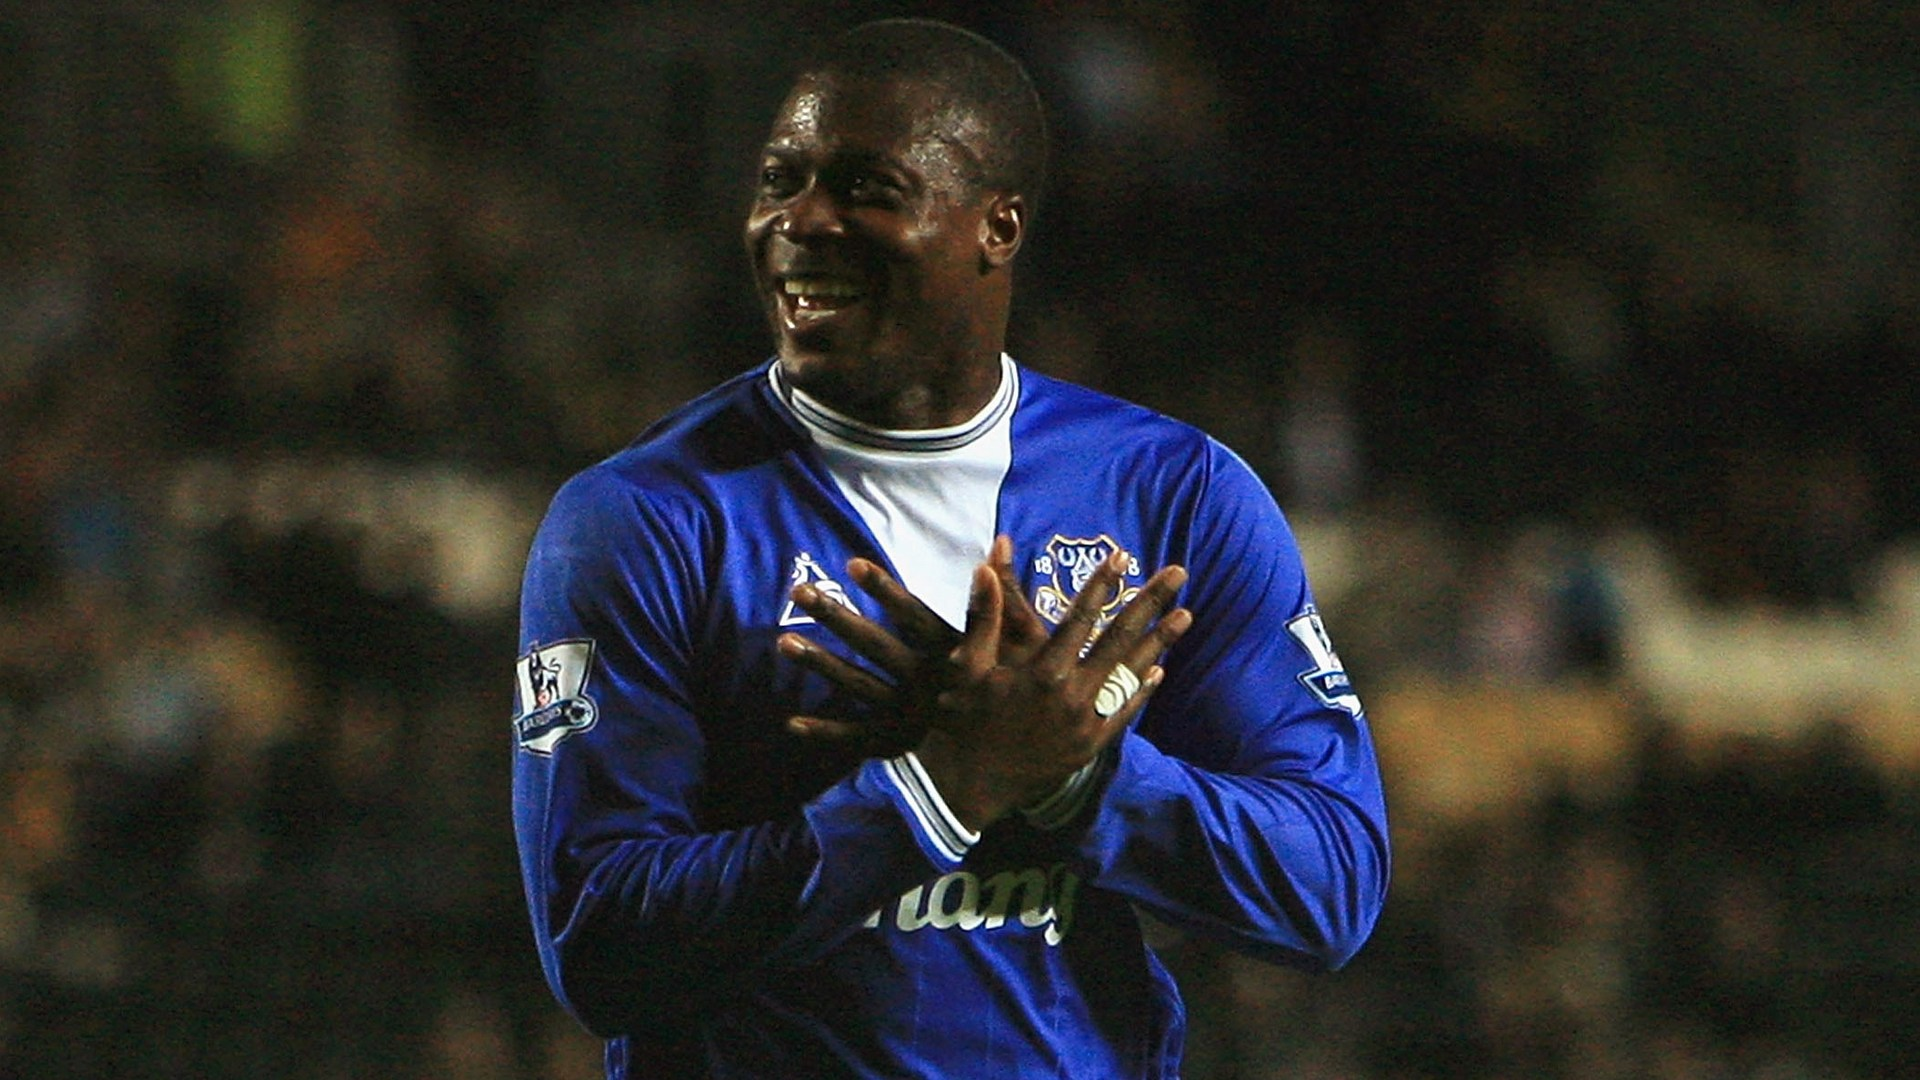 Yakubu Aiyegbeni Retires From Football At 35